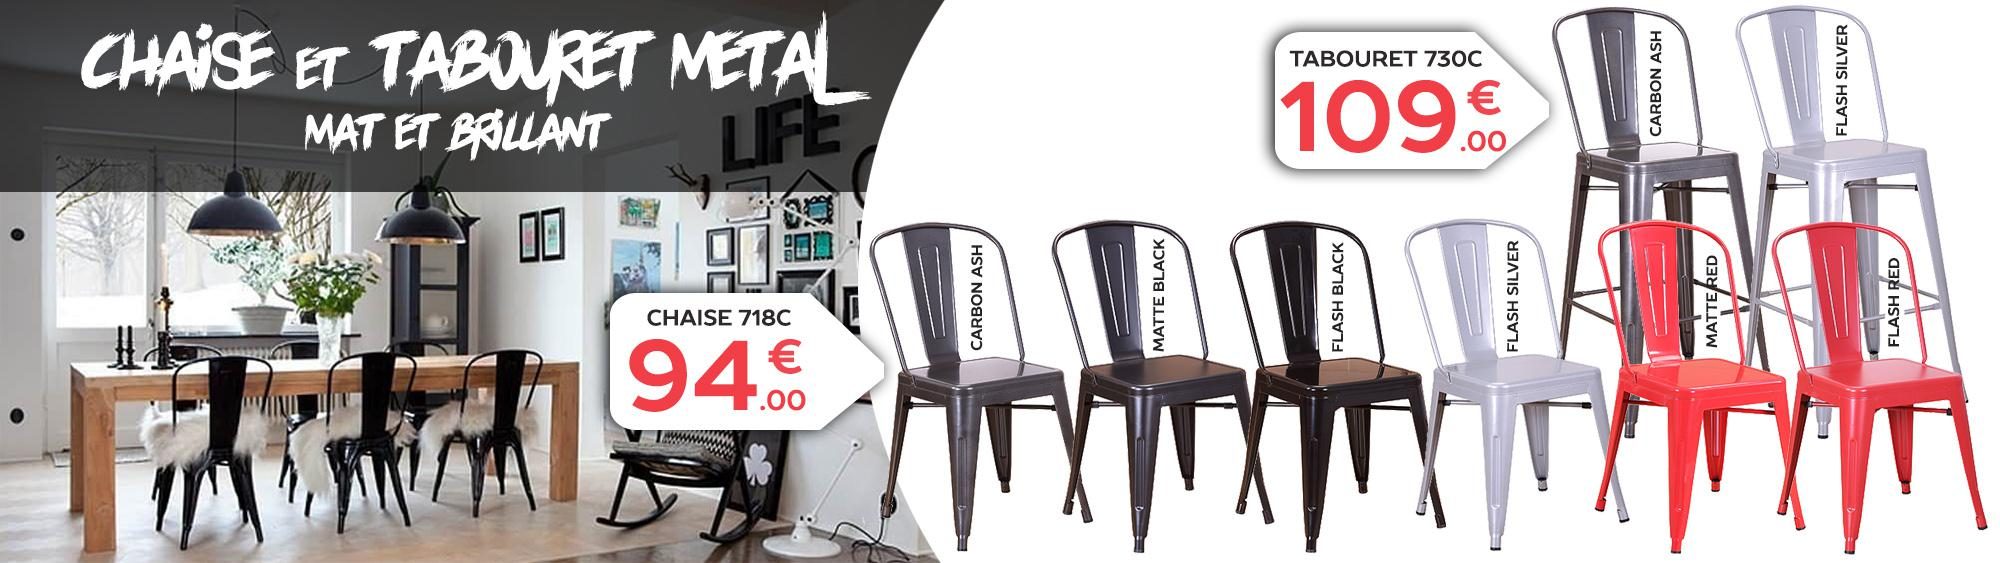 Chaise en métal style tolix multiple couleurs disponibles